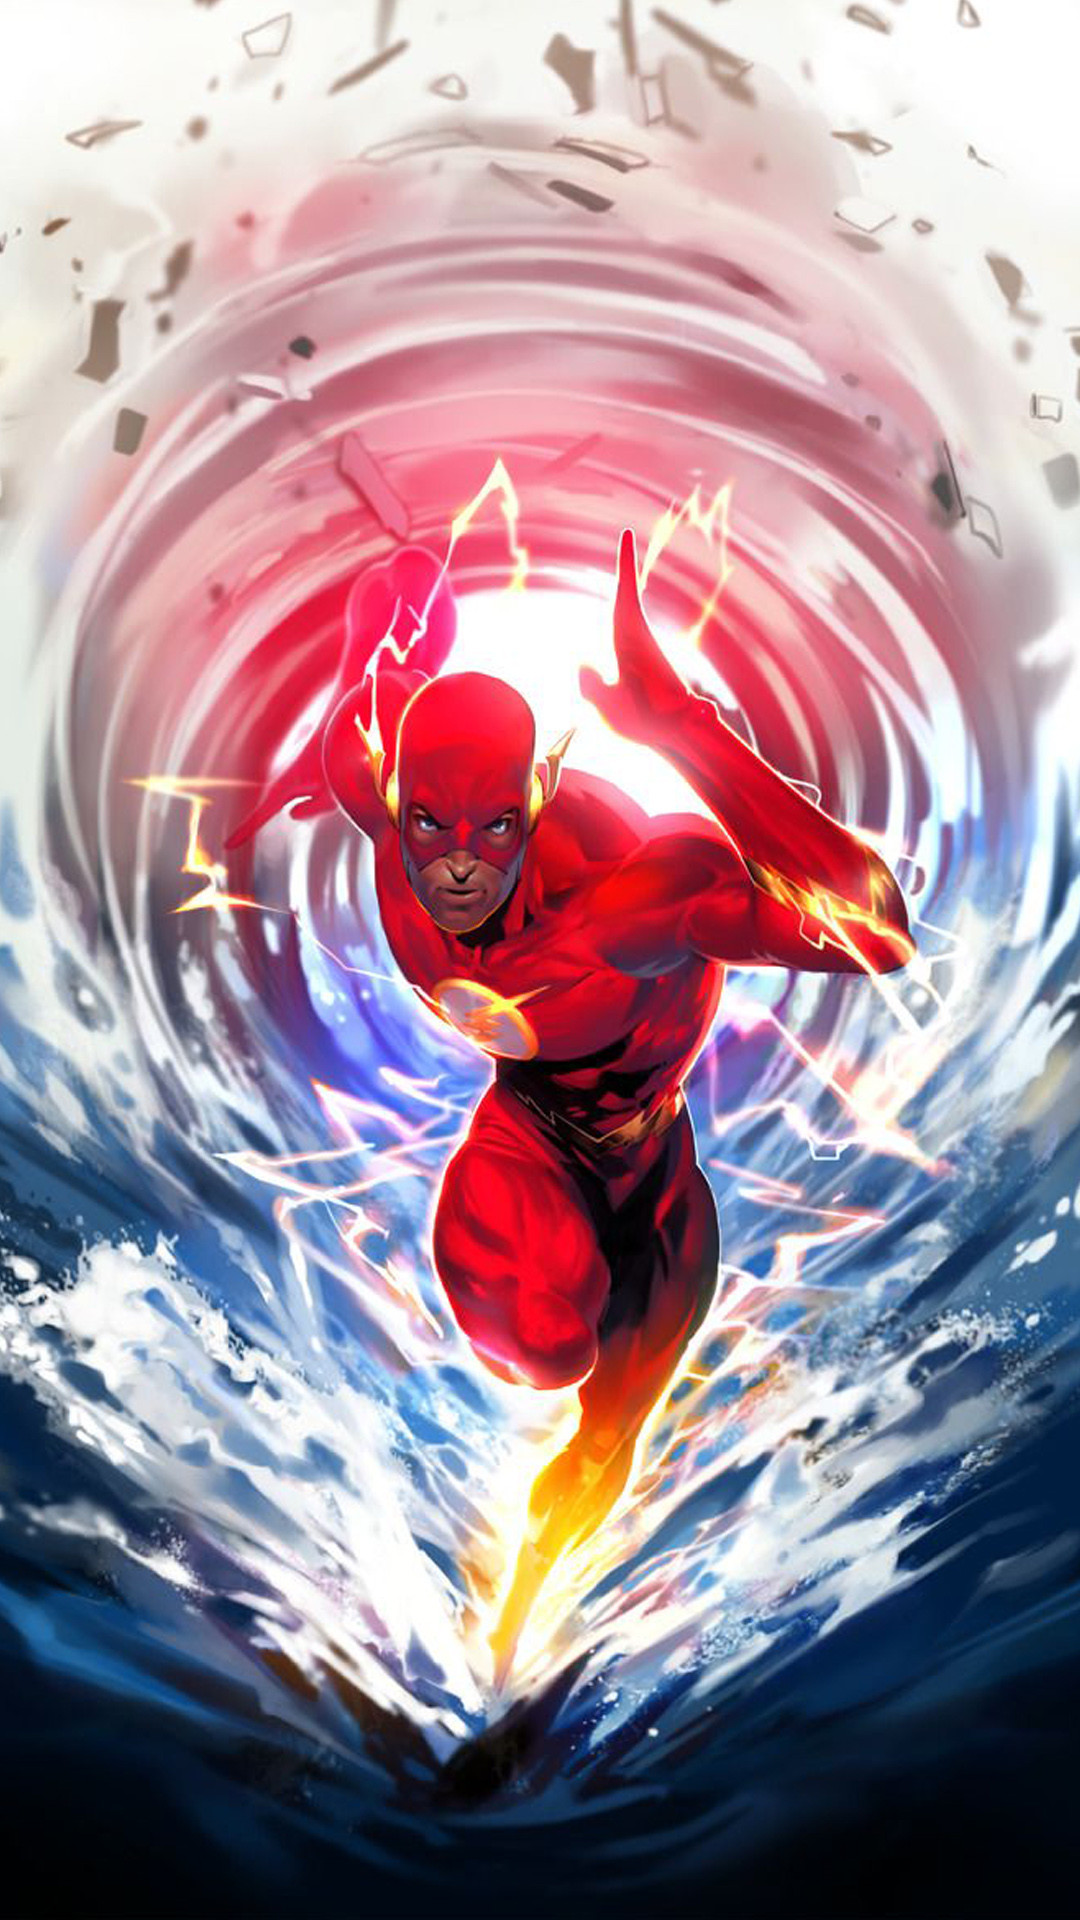 The Flash Wallpaper Tv Movies Hd Wallpapers   Data-src - Iphone 7 The Flash Iphone , HD Wallpaper & Backgrounds